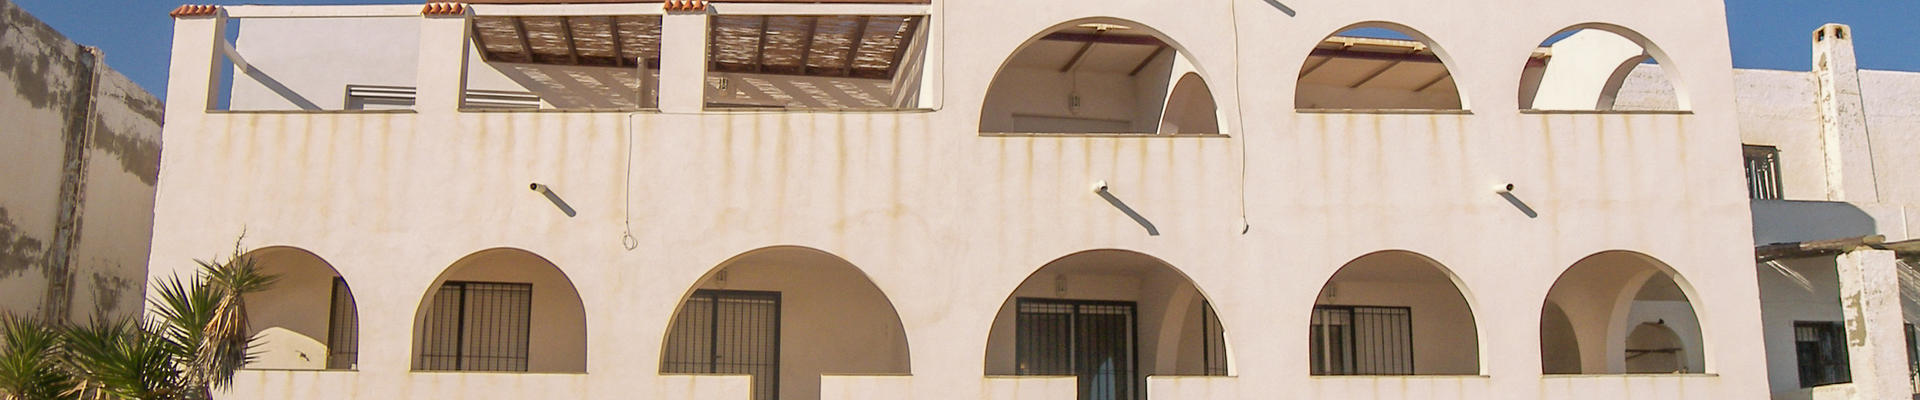 A1187: 12 Bedroom Apartment for Sale